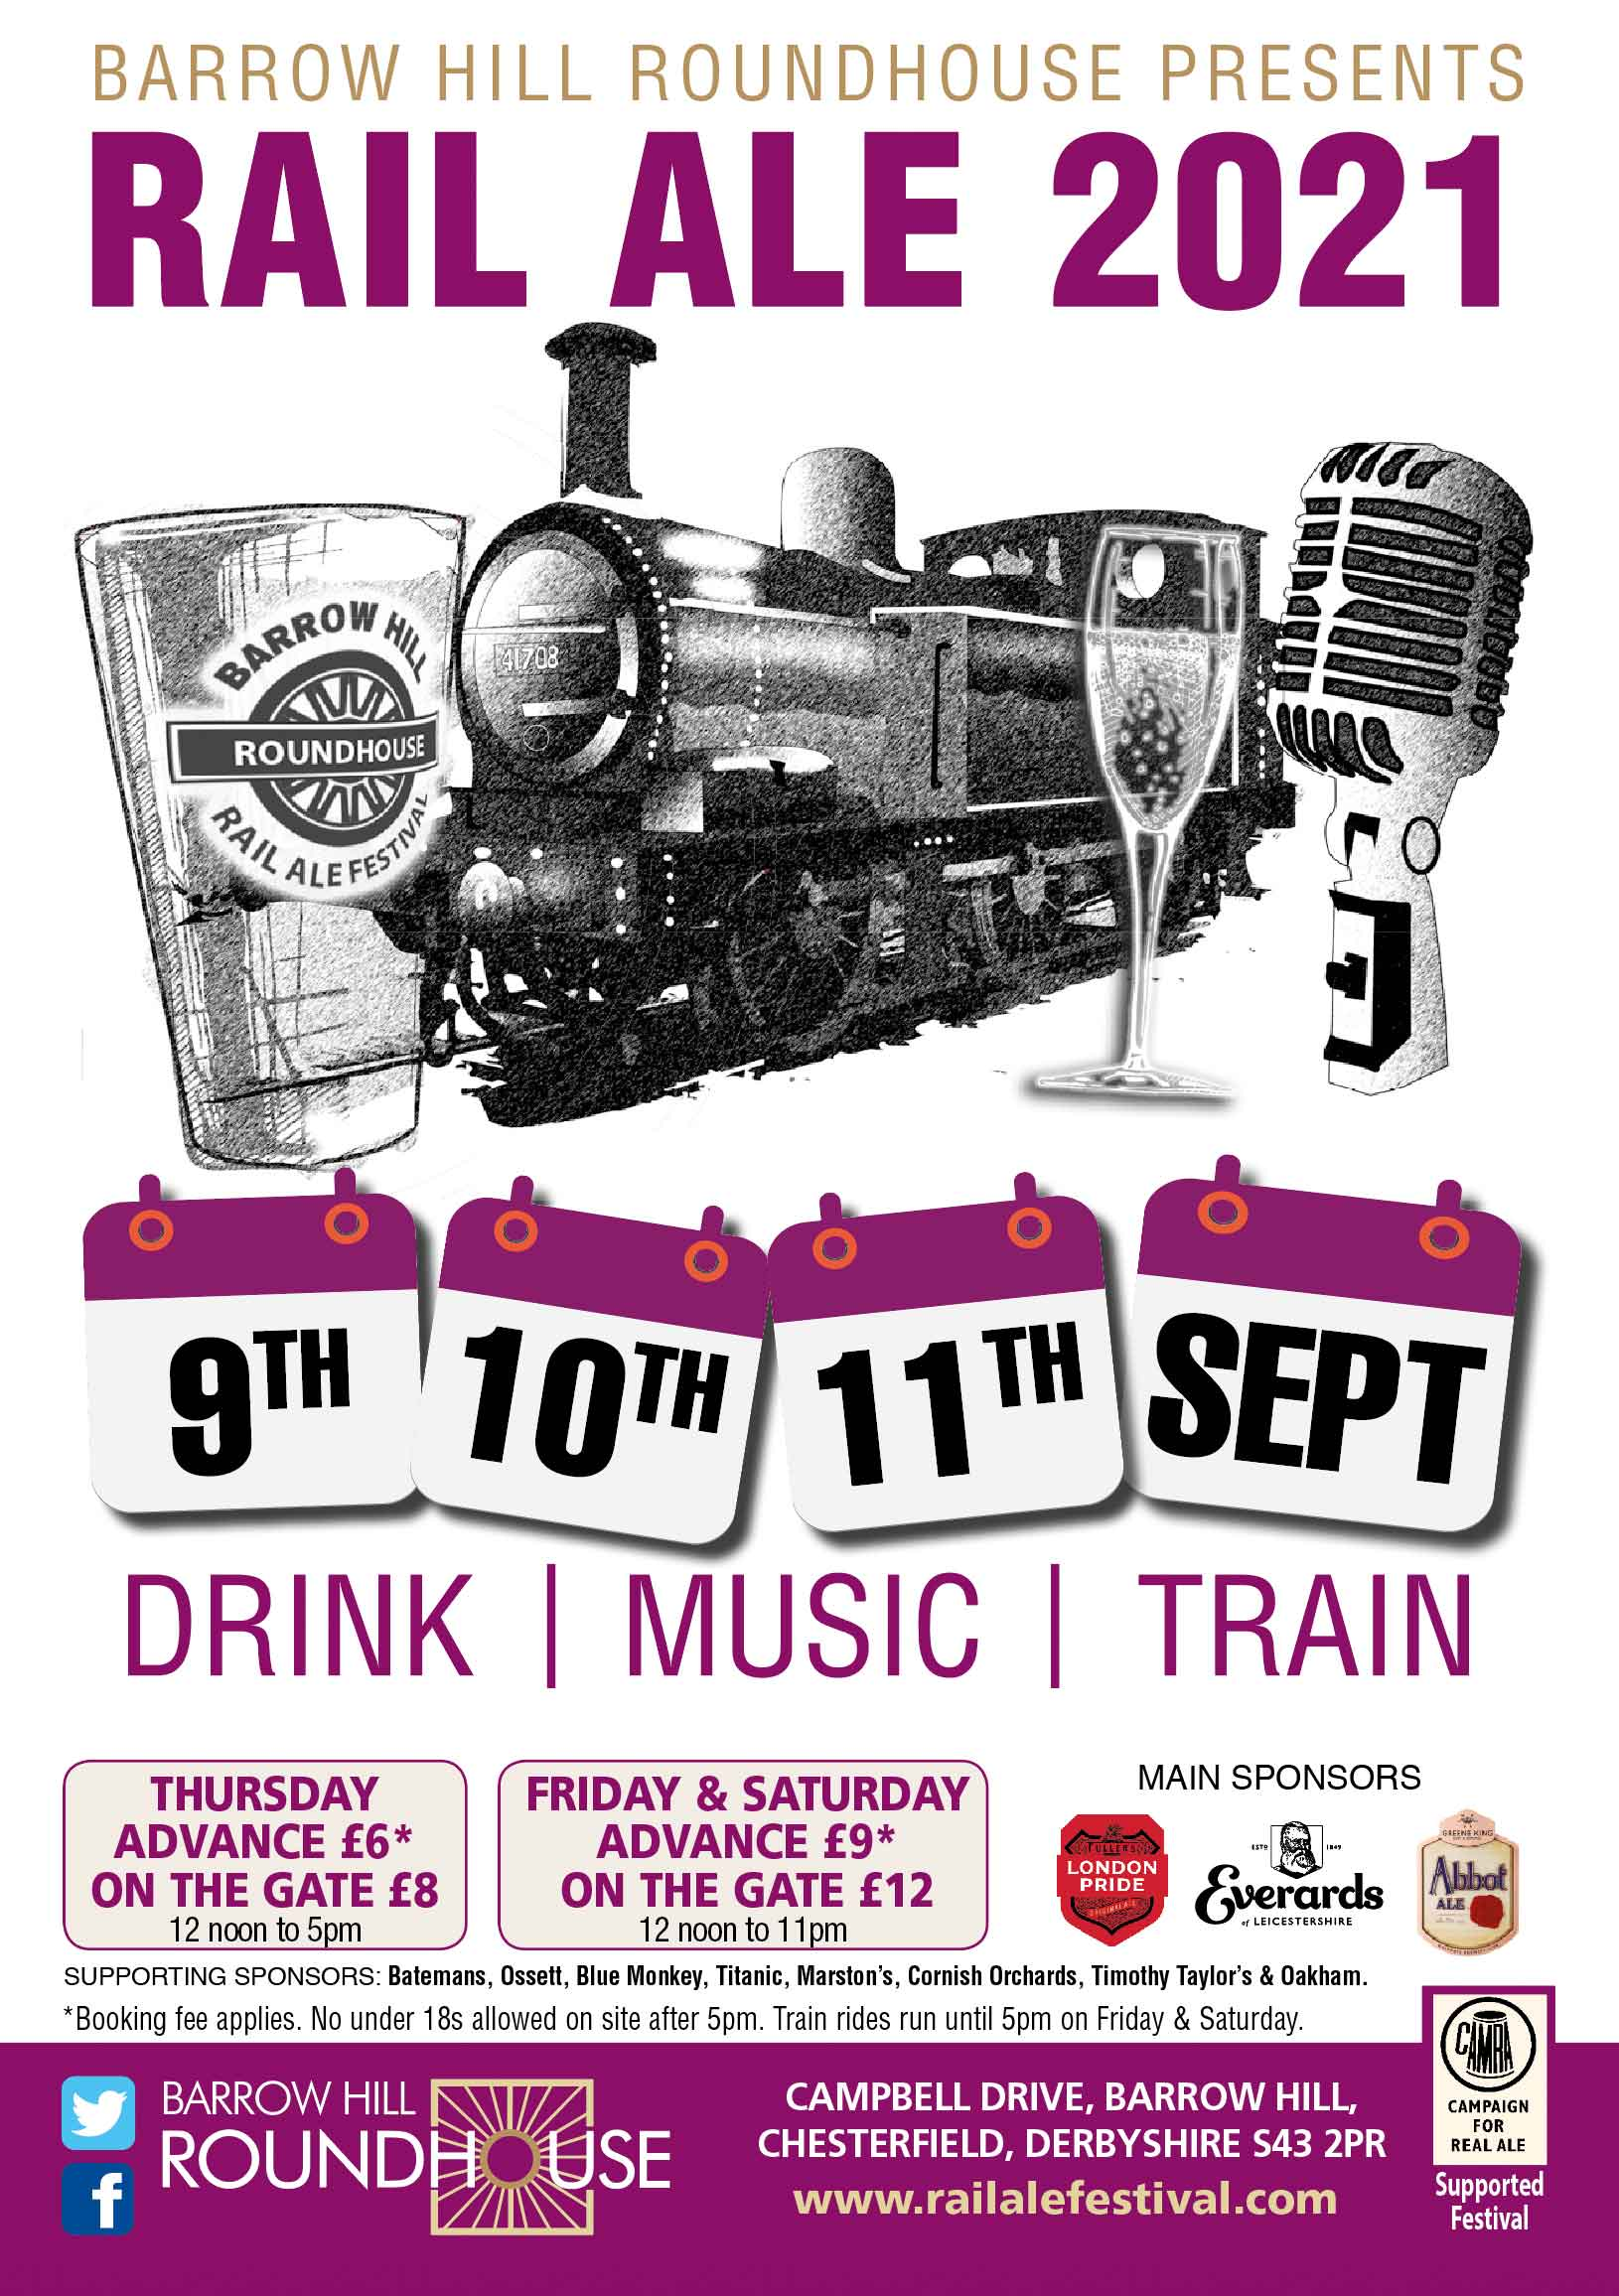 Party Night at Barrow Hill Roundhouse